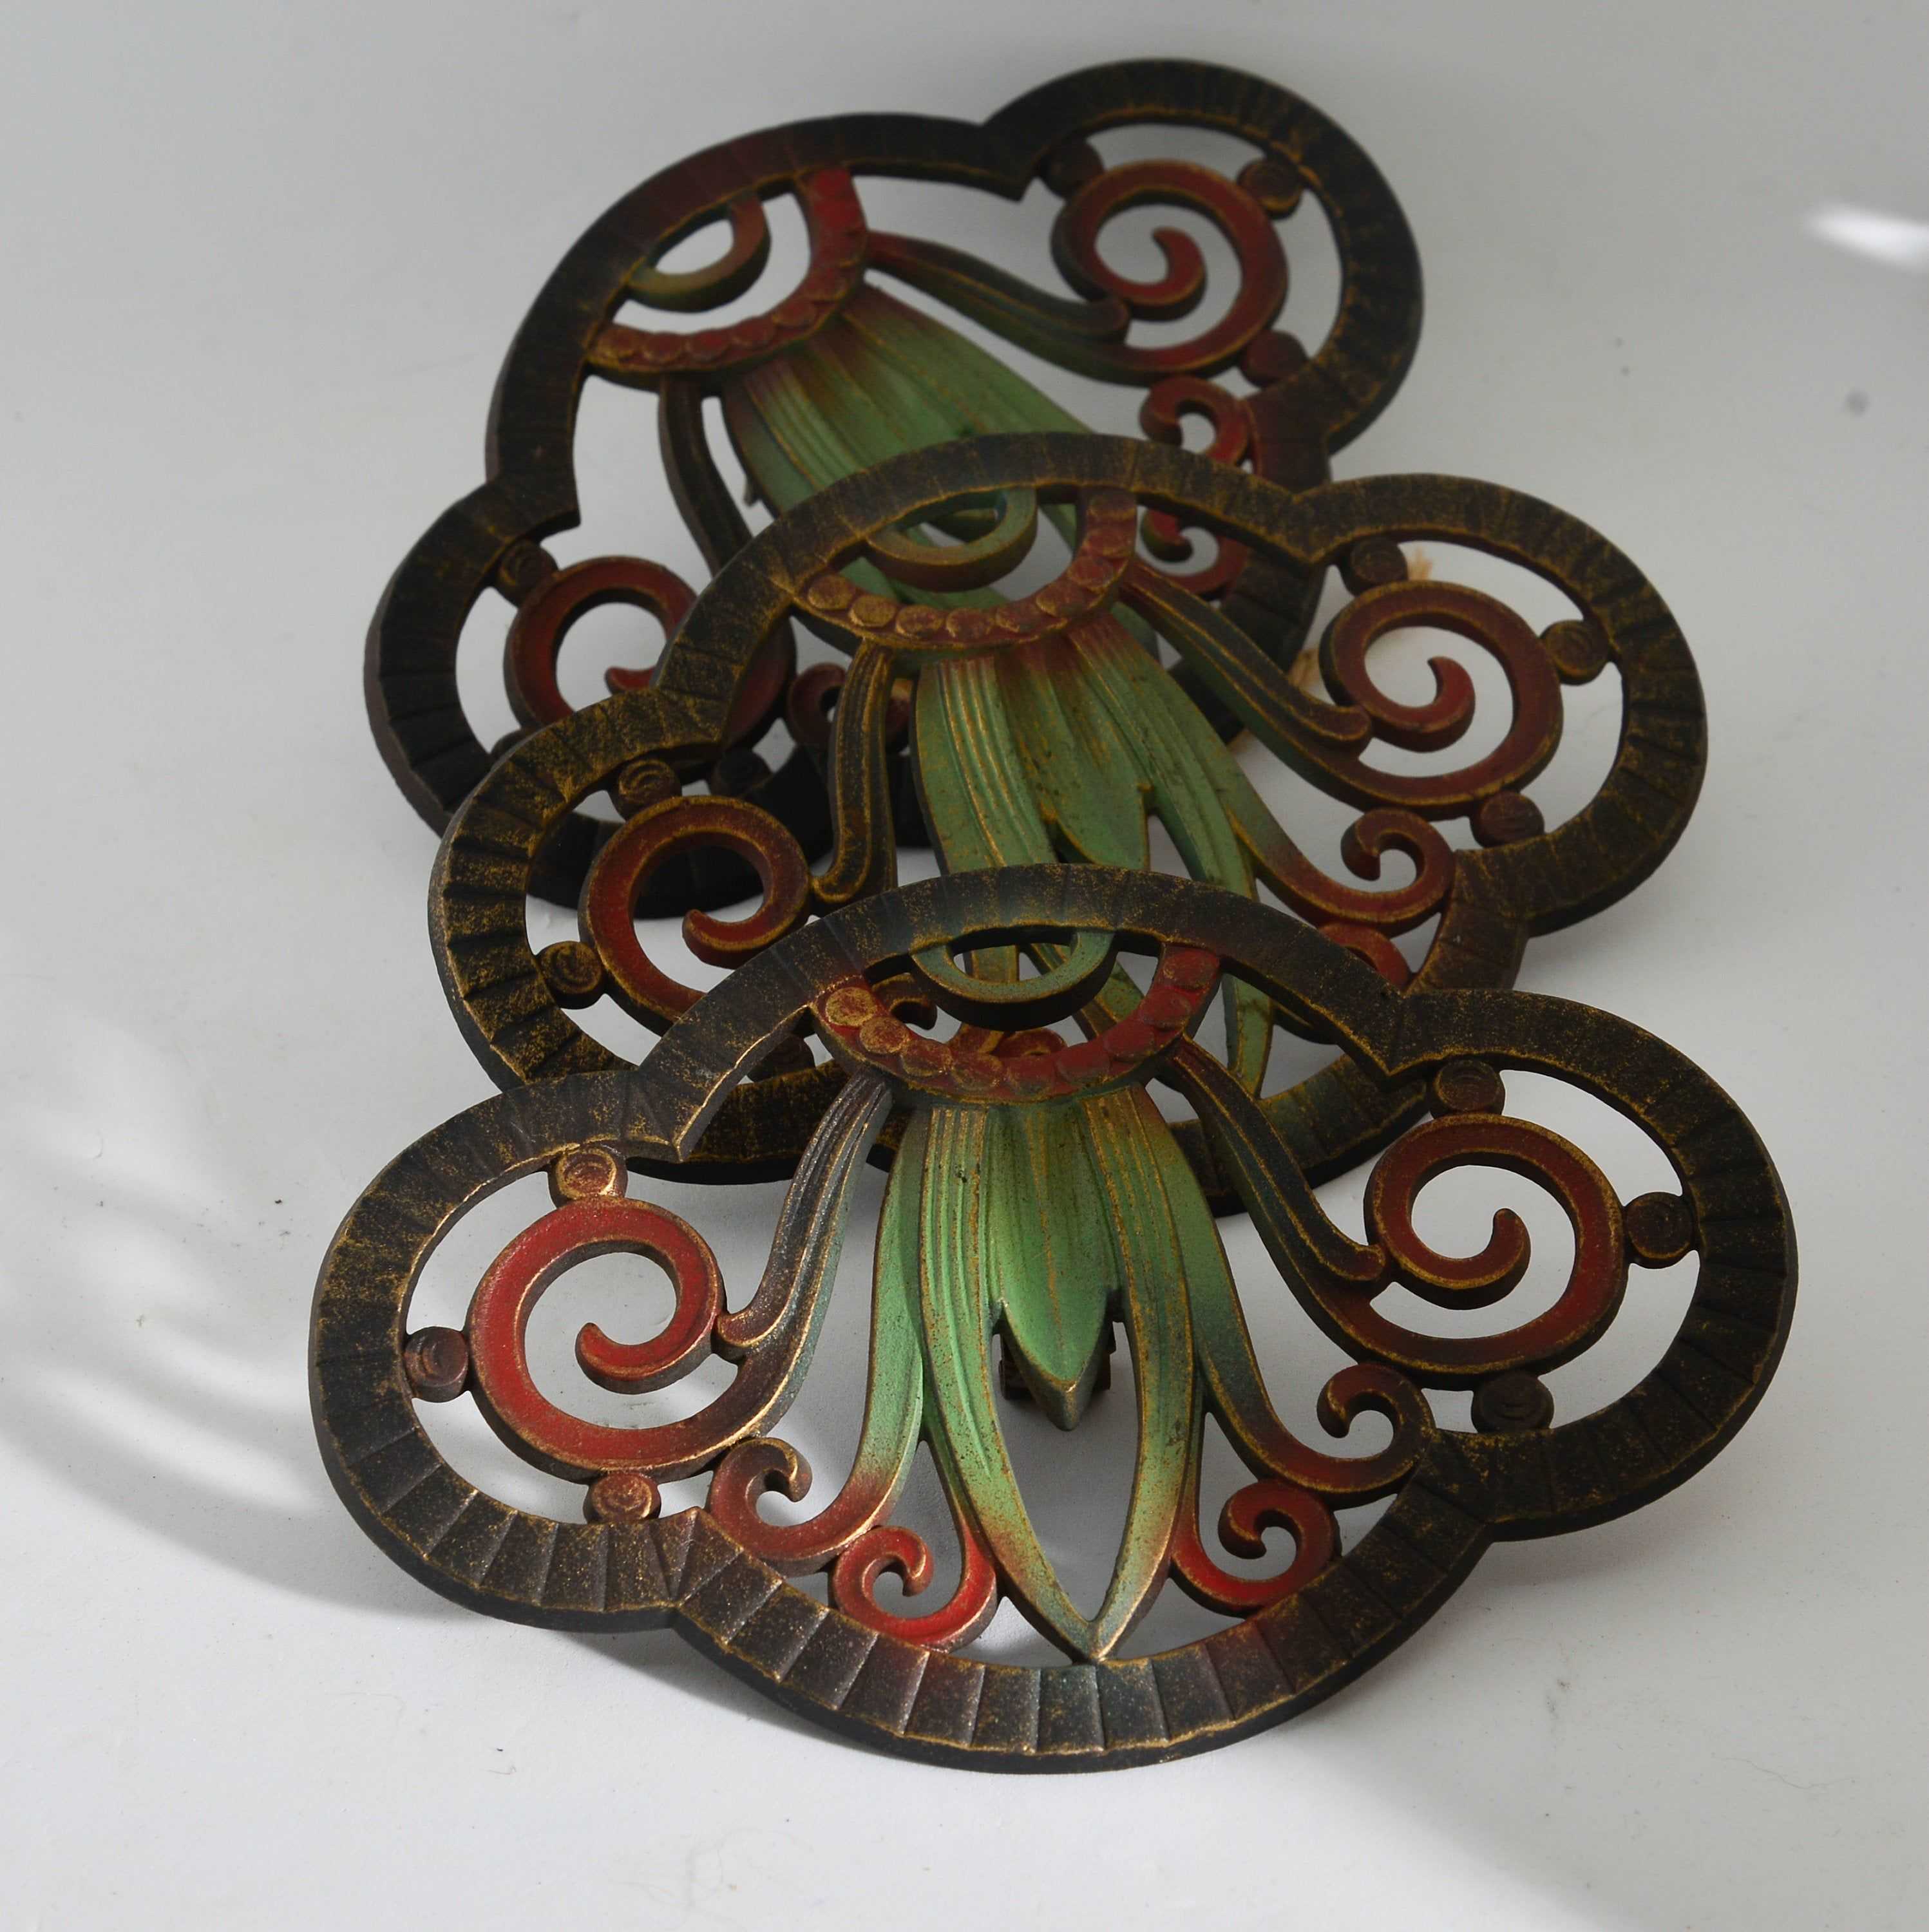 Stunning Judd Cast Iron Art Deco Art Nouveau Curtain Finials